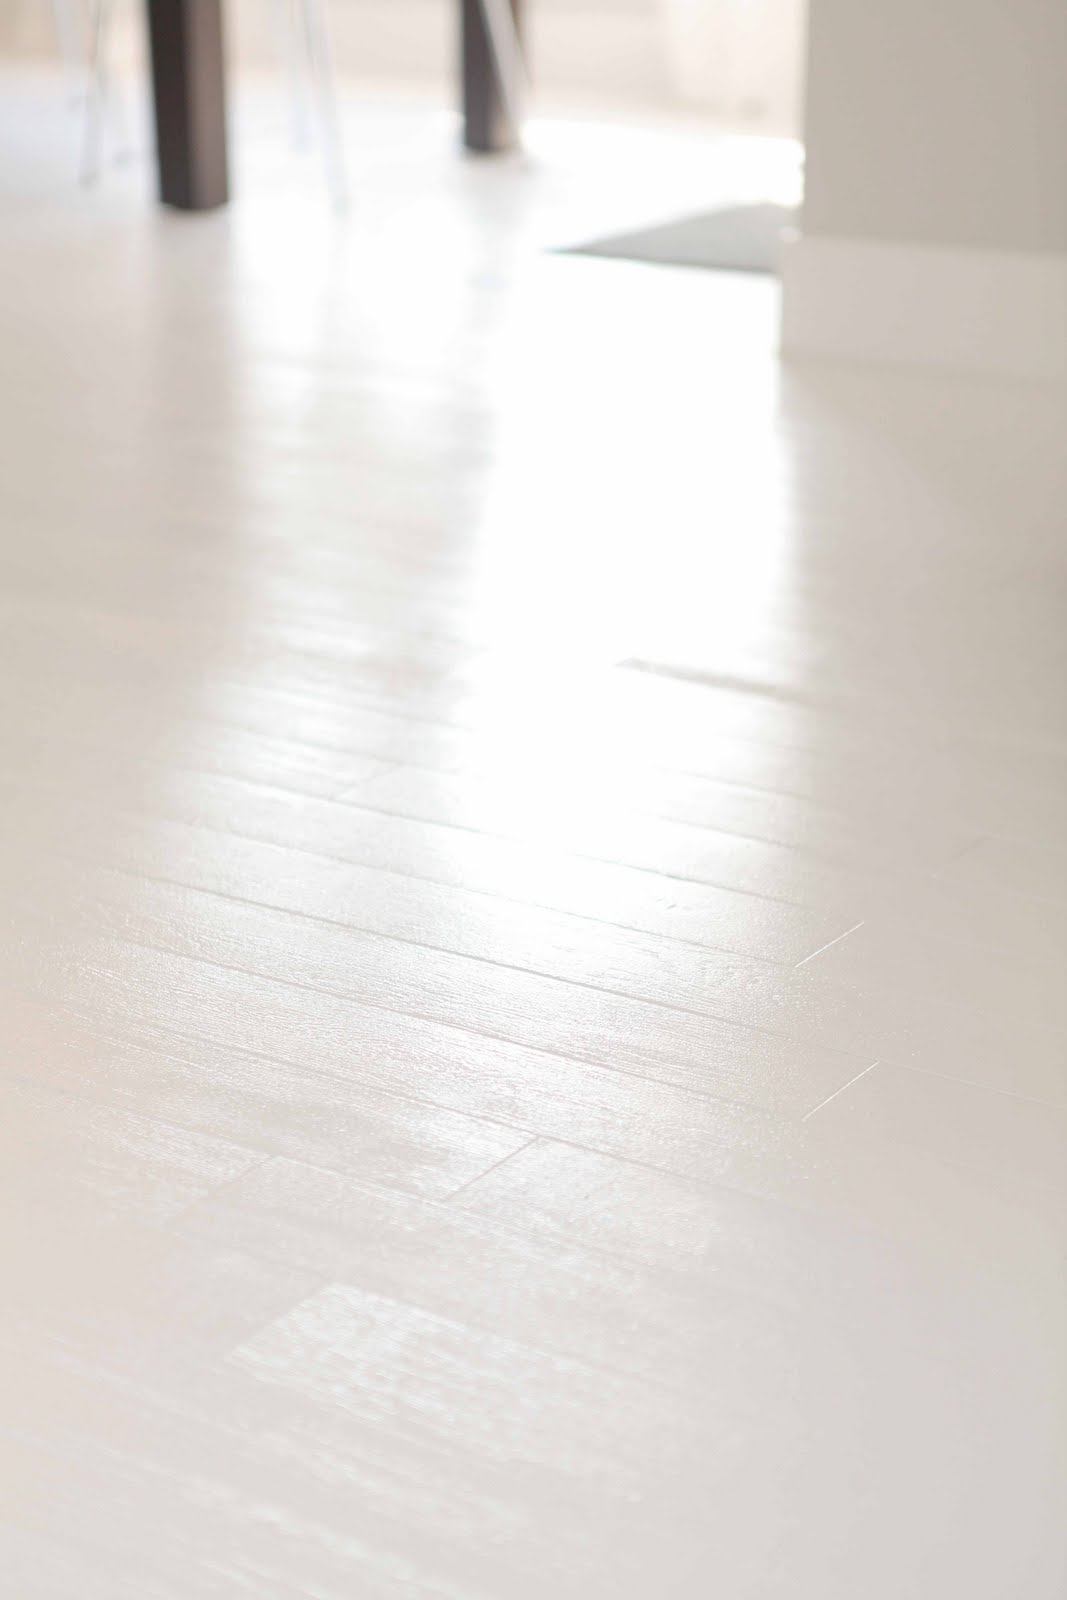 Beach House in The City white hardwood floors chapter 3